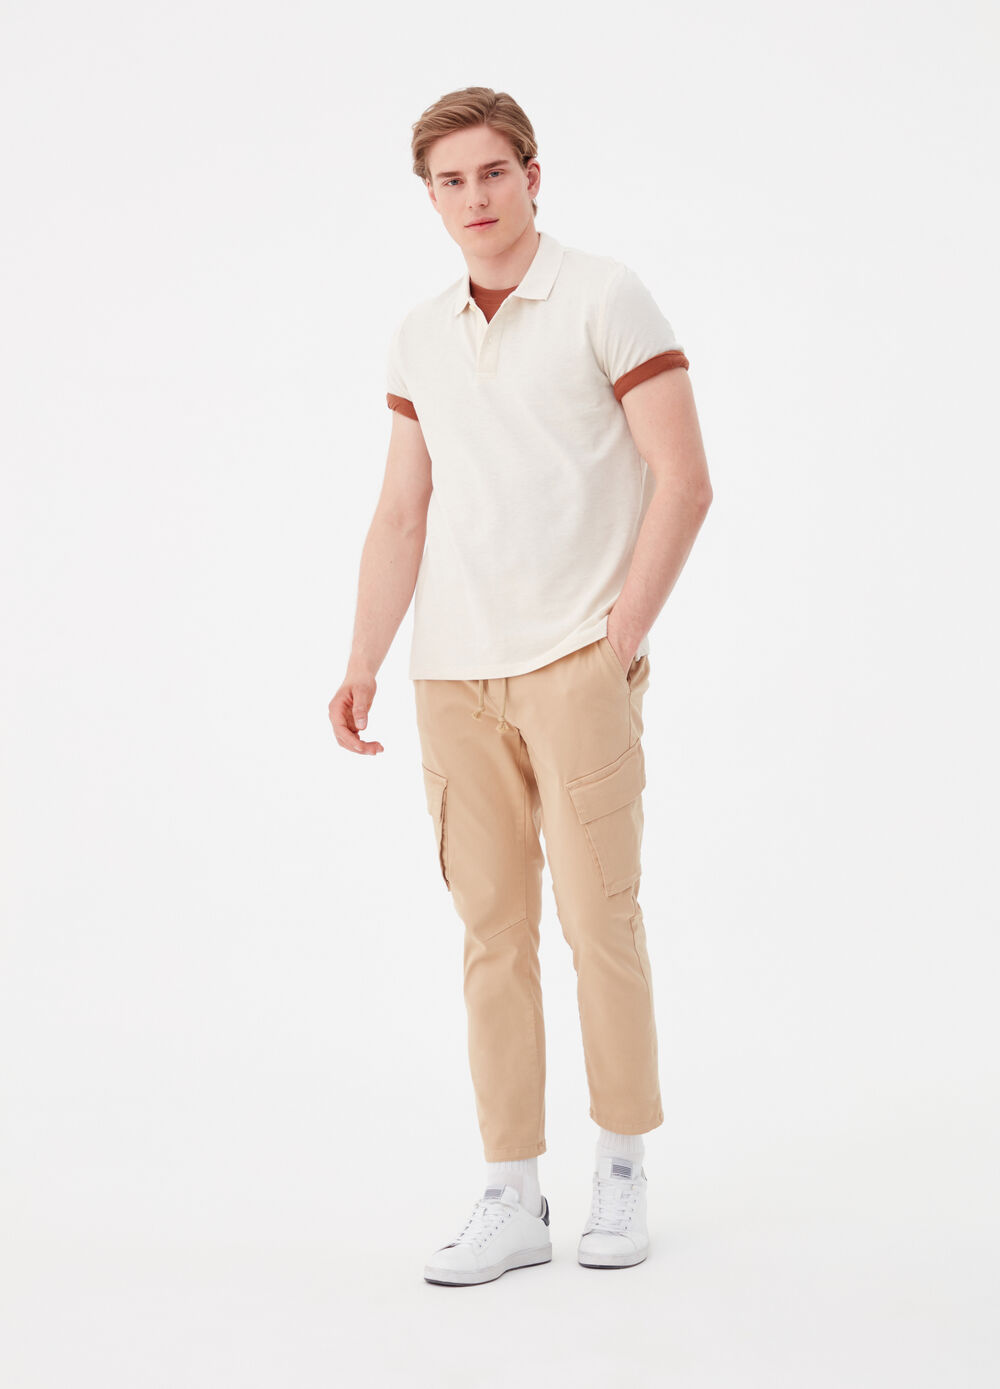 Solid colour cargo pants with drawstring